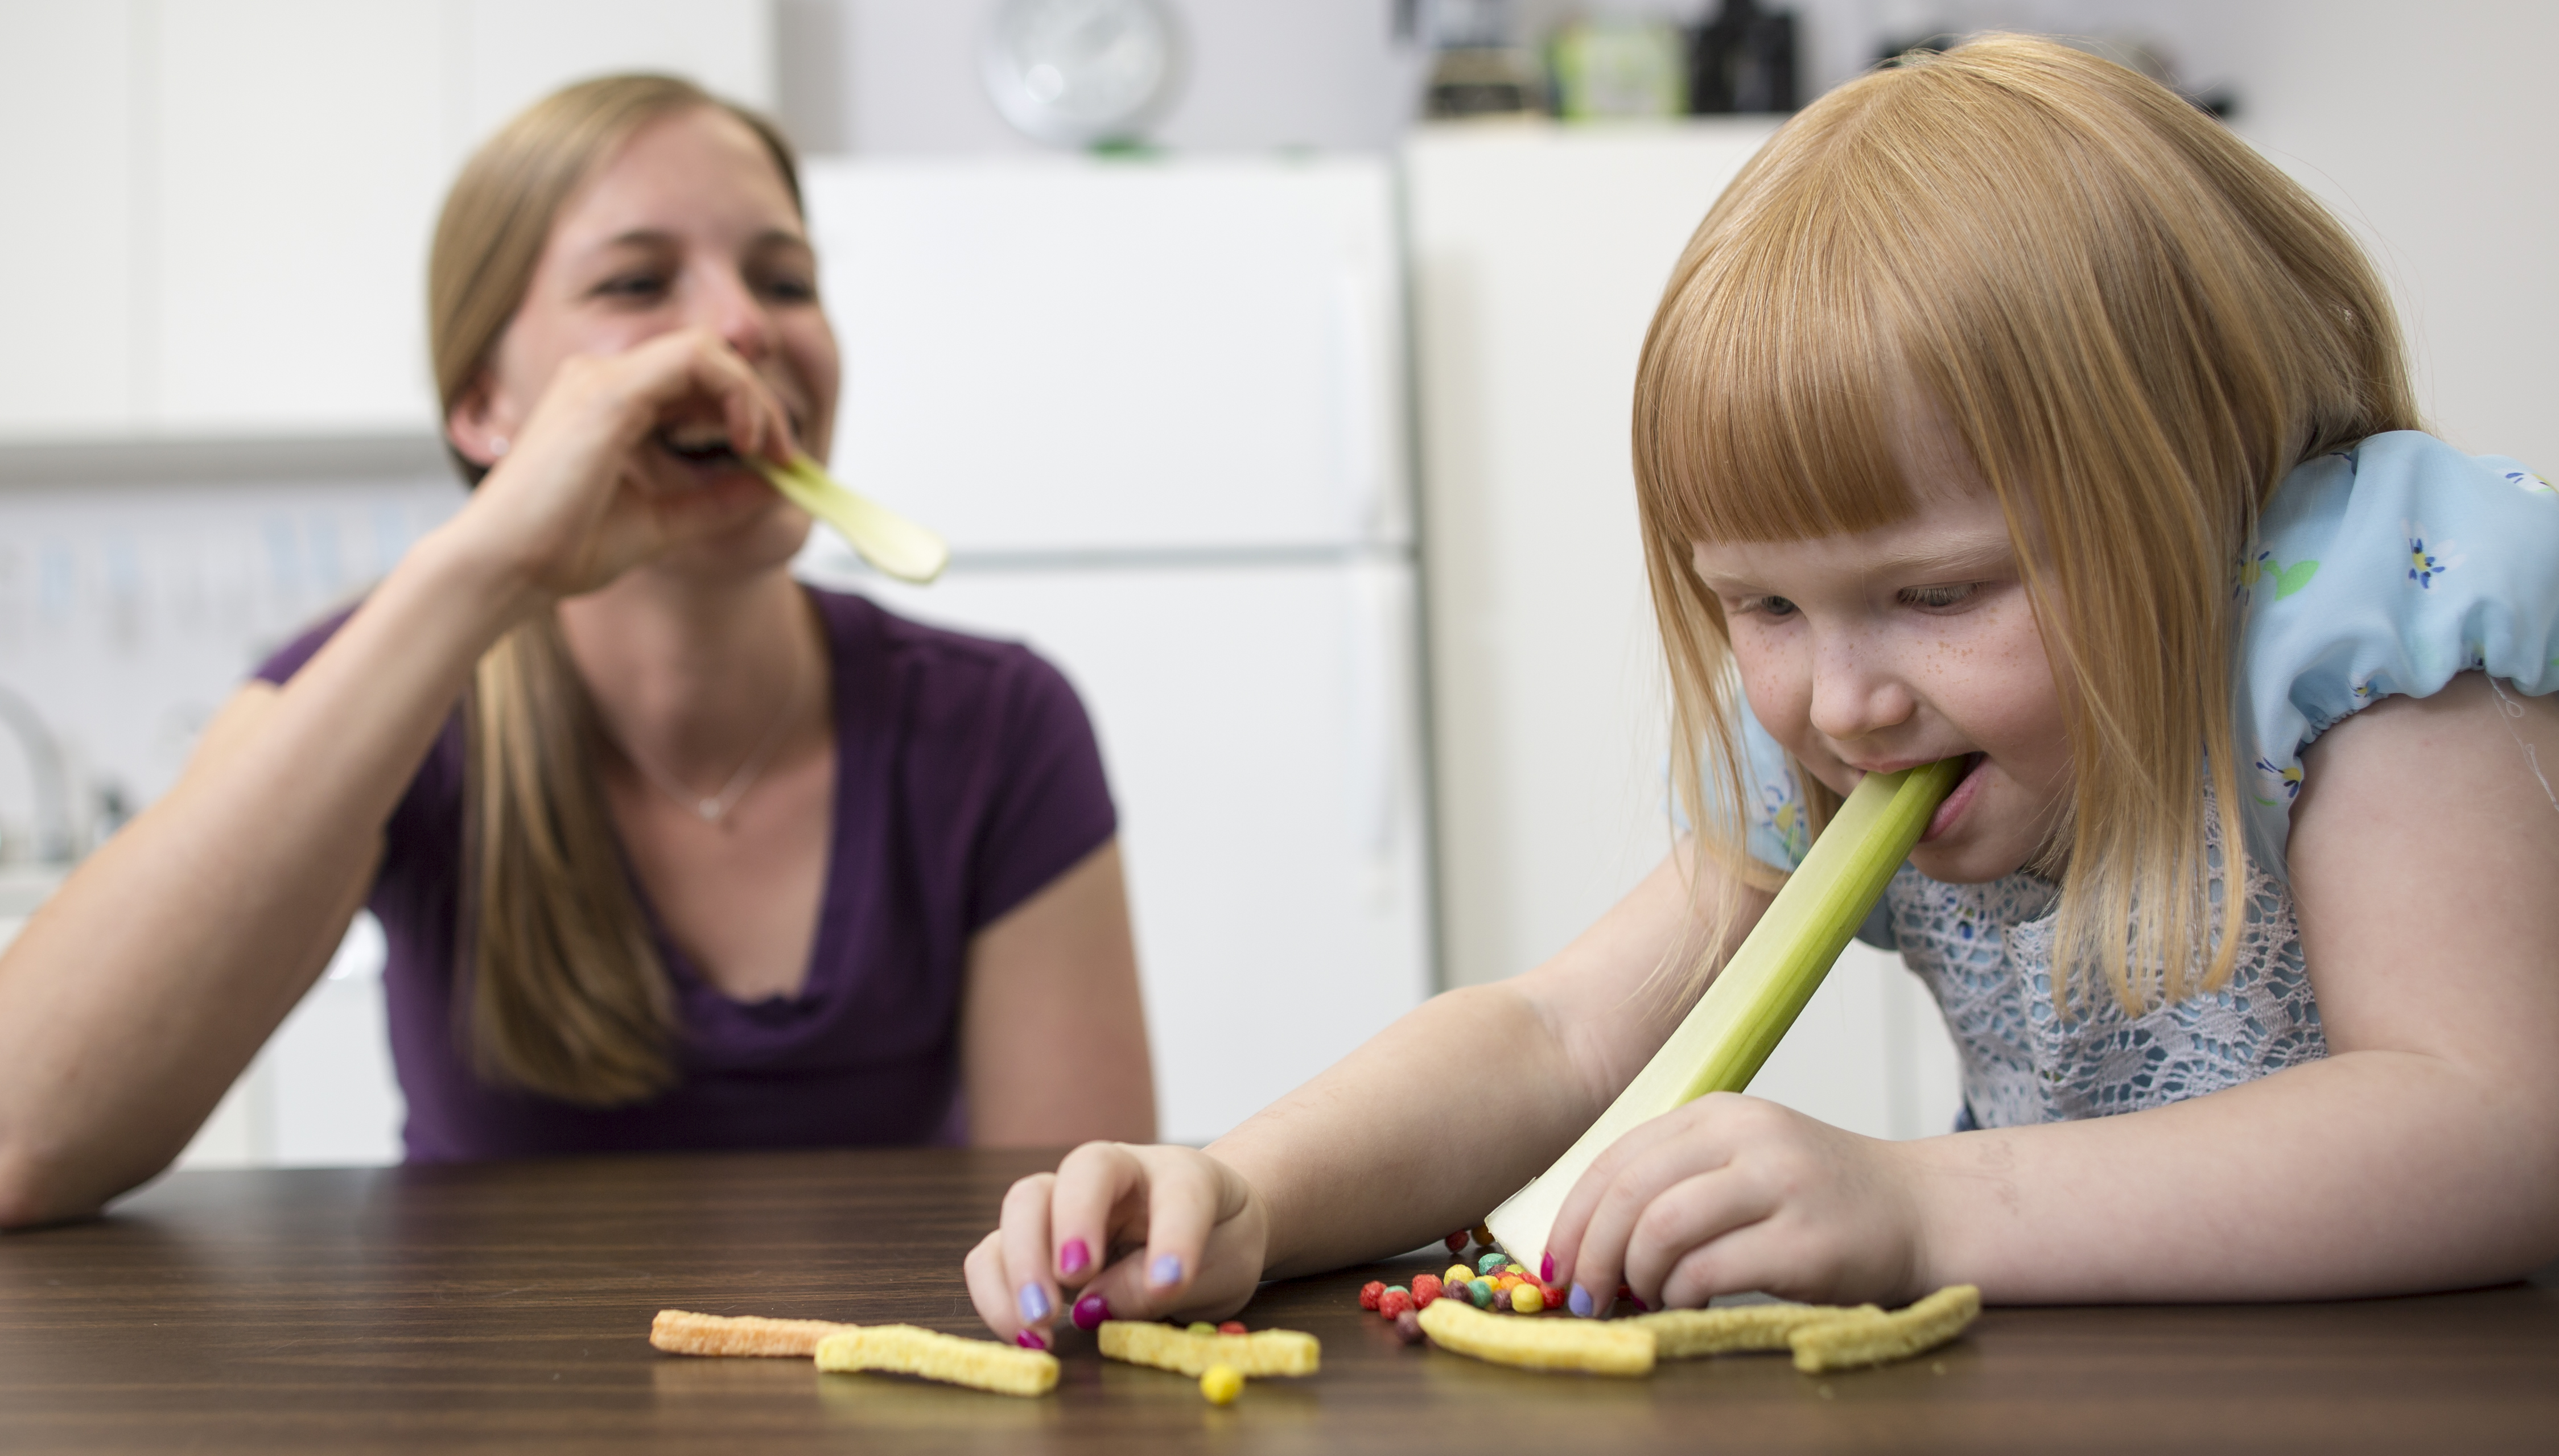 Child is sitting at the table with a long piece of celery in her mouth with the end touching the table. There are candy pieces and veggie straws on the table around her. A therapist is sitting next to her with a piece of celery in her mouth